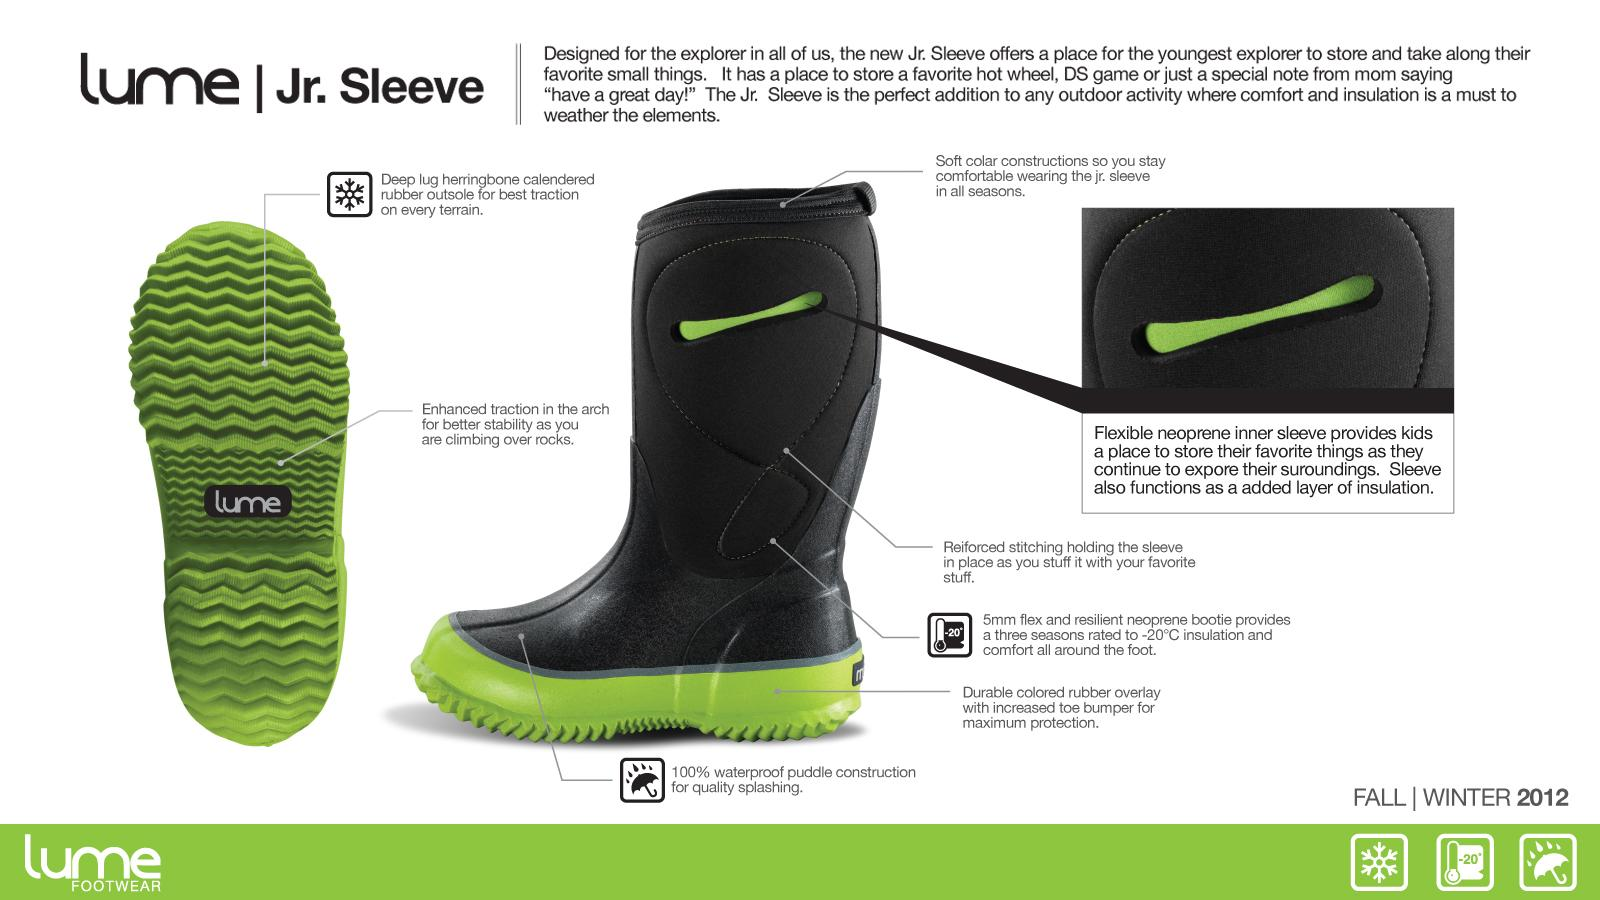 LUME Jr. Sleeve: Footwear Designed for the Junior Explorer by Andrew Estey — Kickstarter